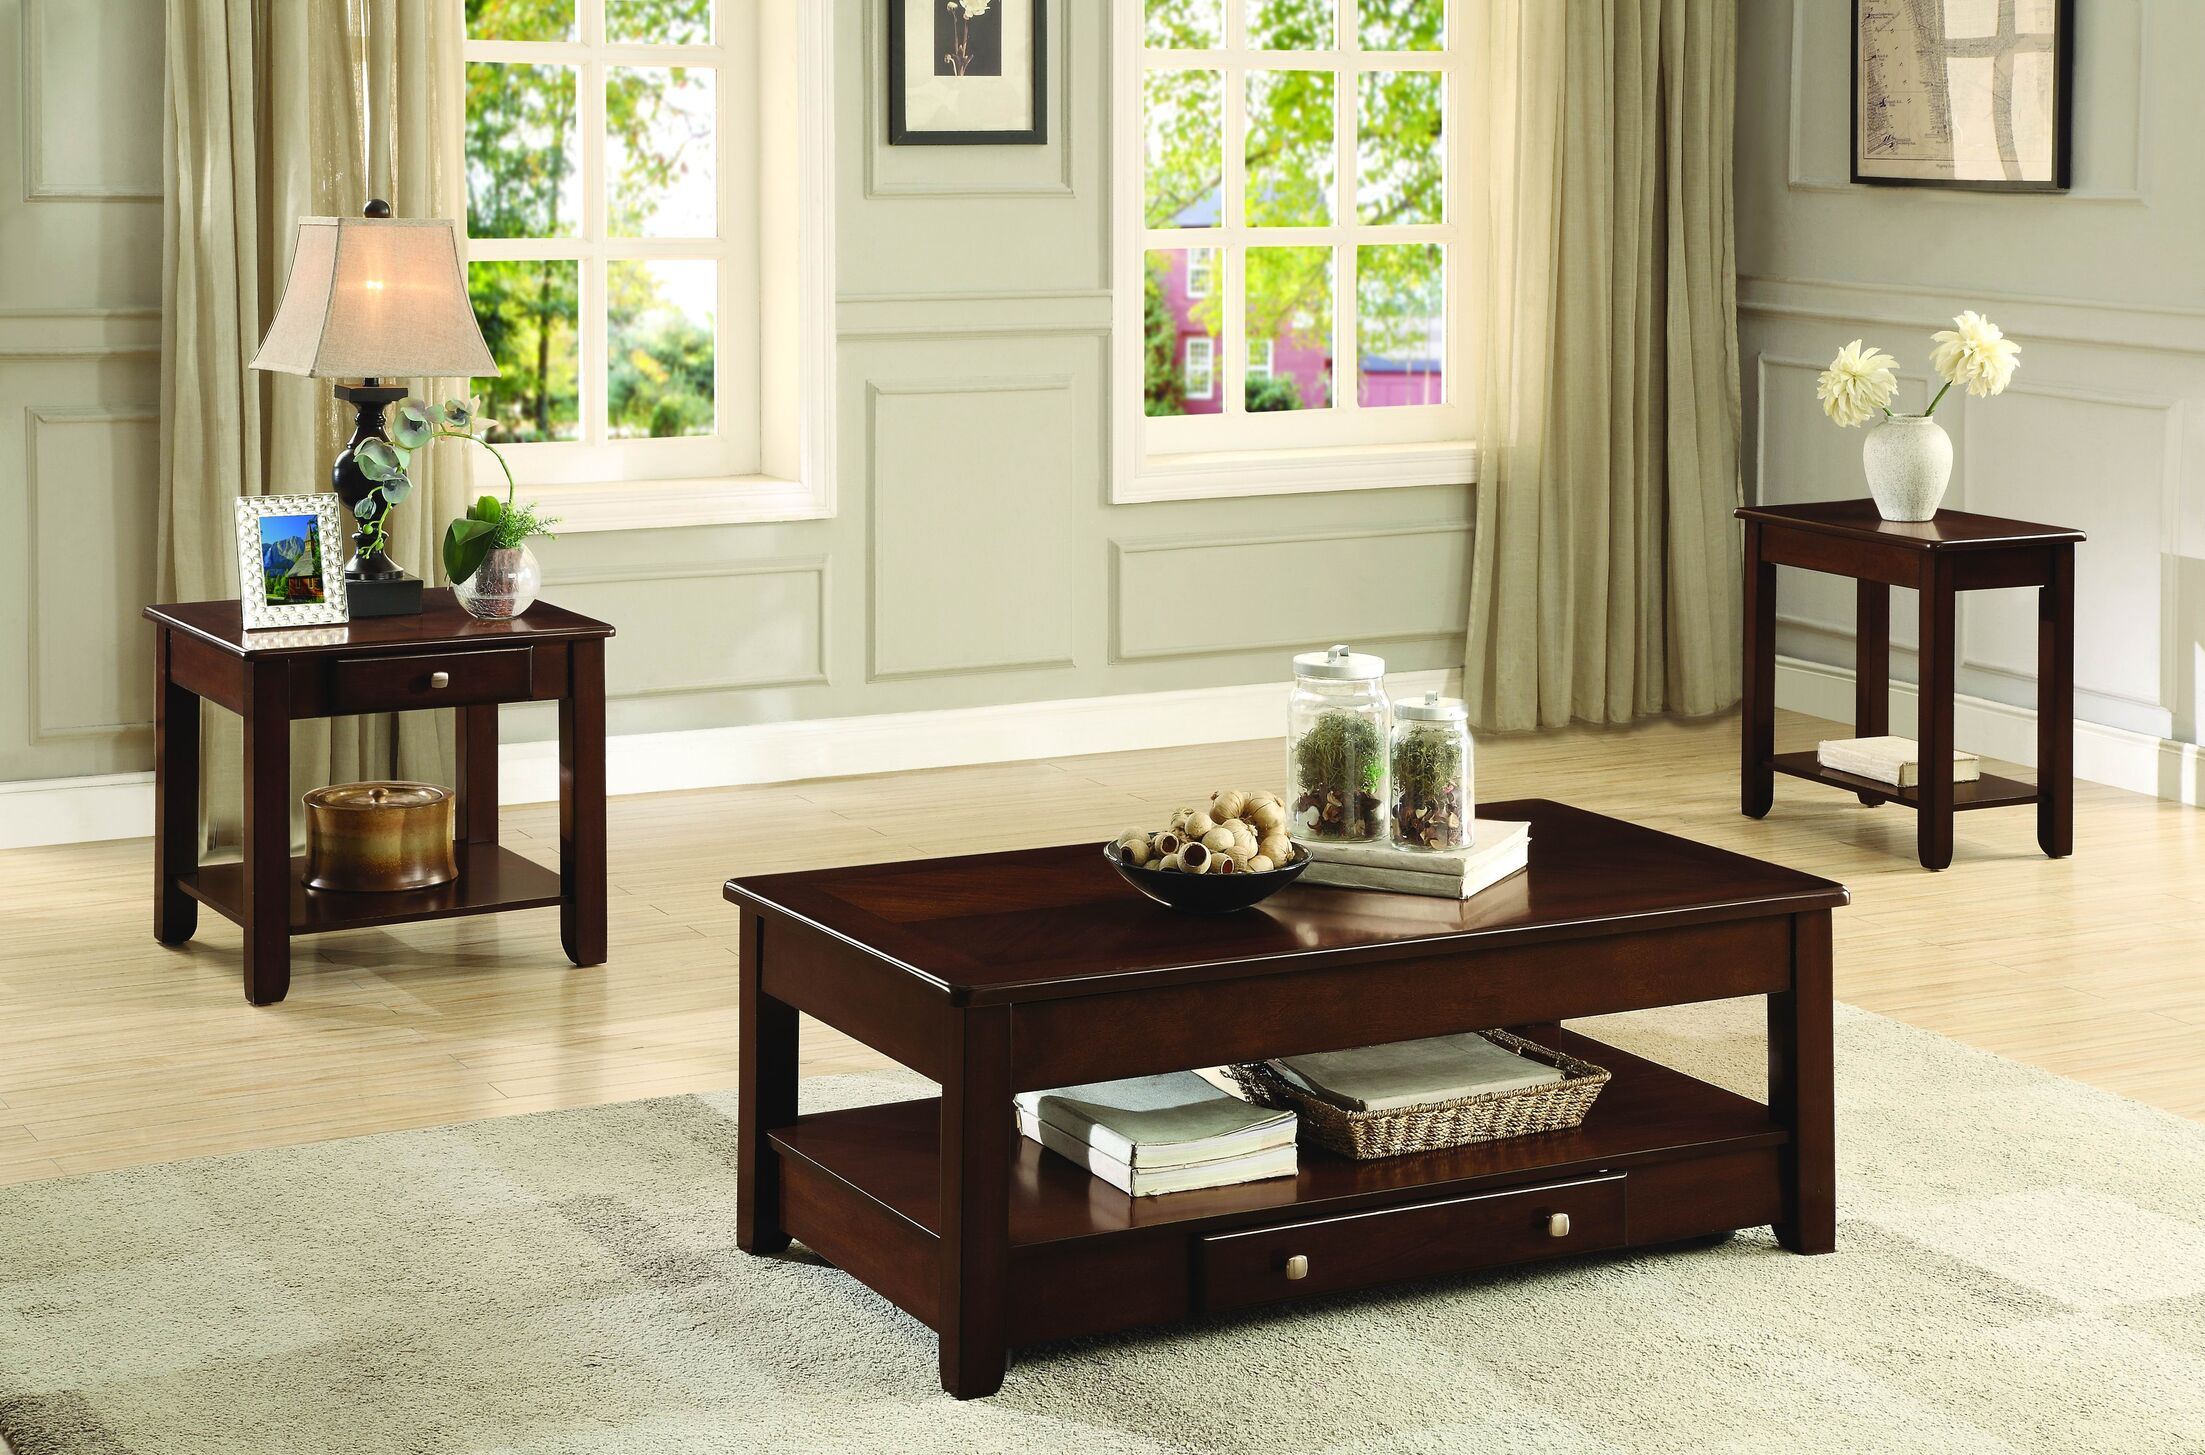 Medora Lift Top Coffee Table